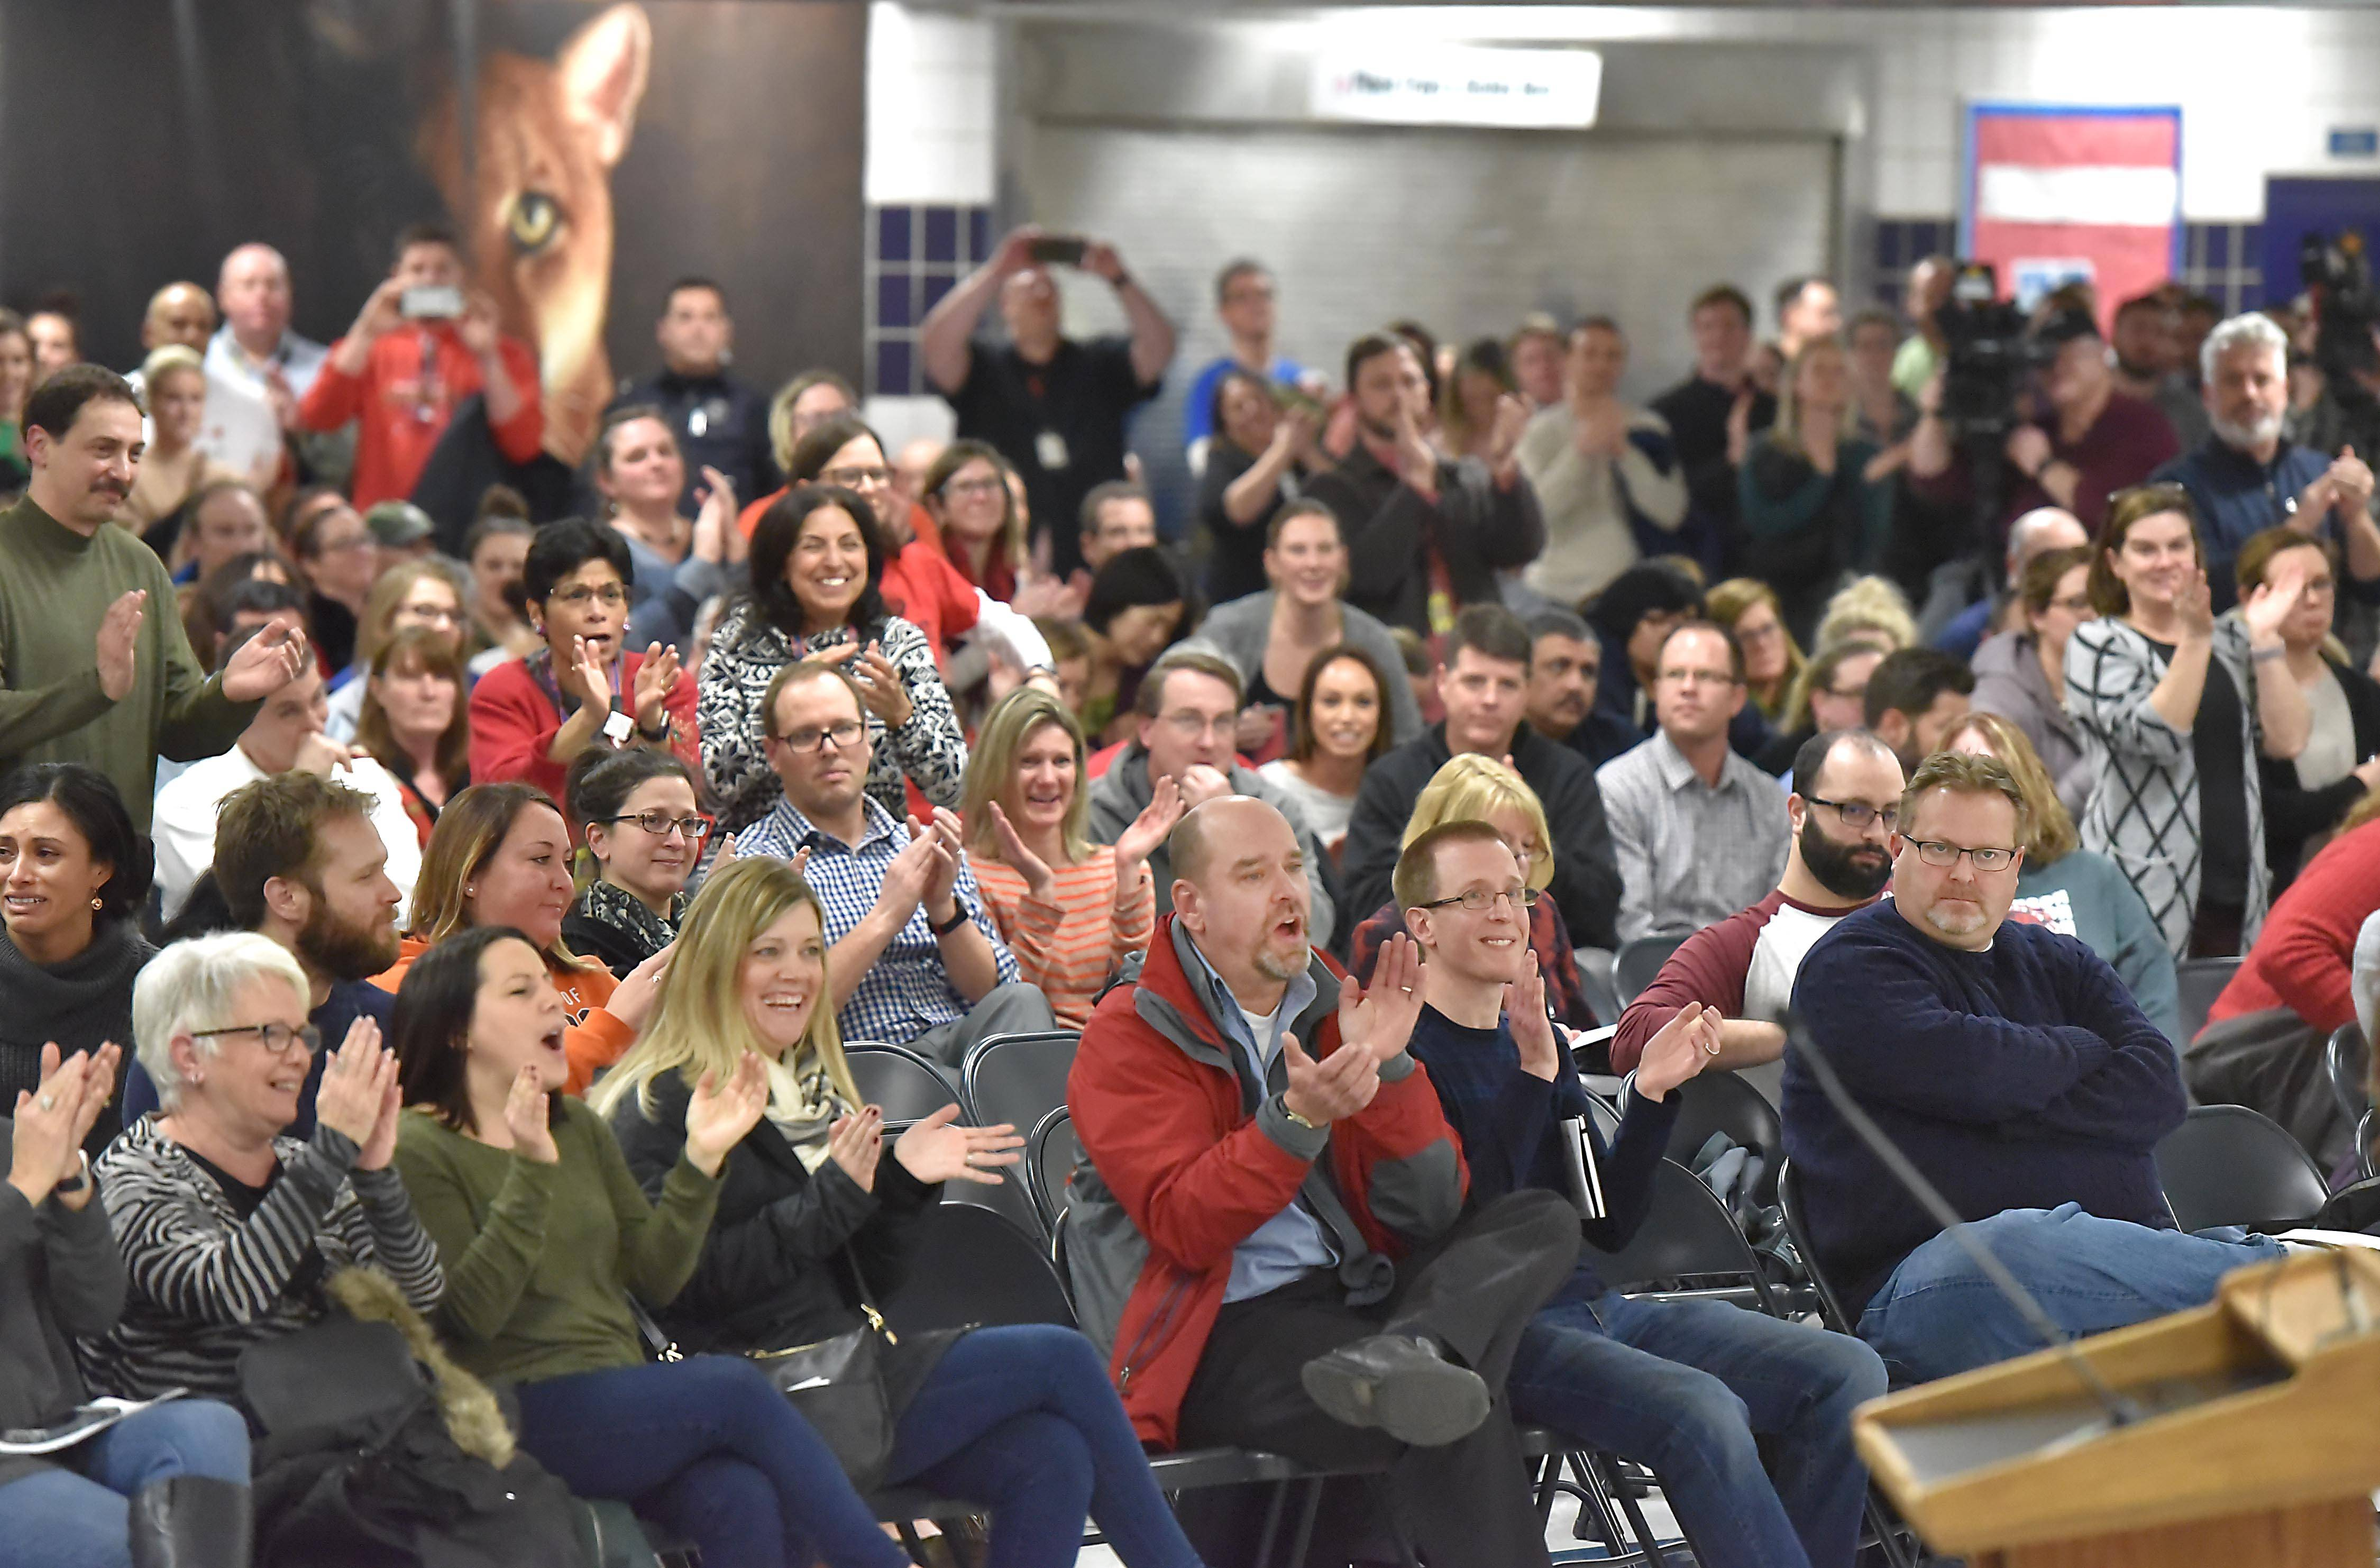 A crowd of teachers, parents and students filled the Conant High School cafeteria last Thursday night to comment on the looming threat of a teachers strike in Palatine-Schaumburg High School District 211. The strike was averted by a new contract proposal 90 hours later.